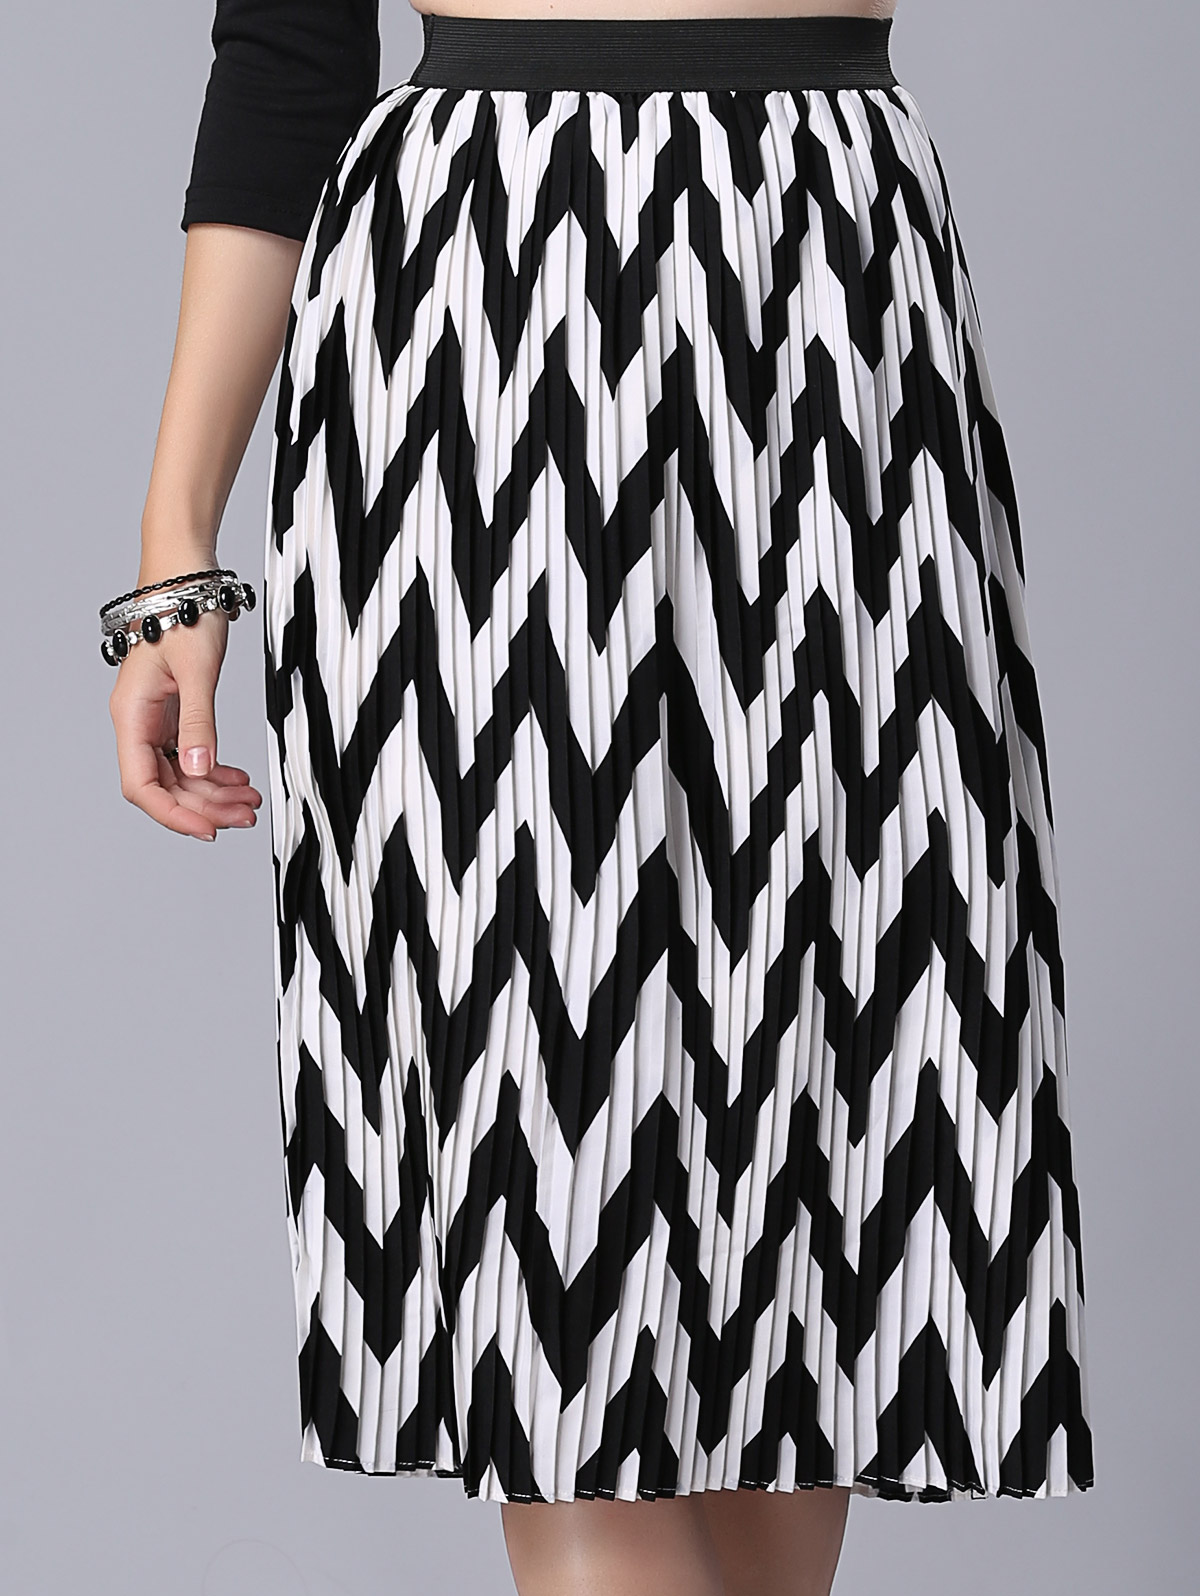 High Waist Zig Zag Pattern Skirt - White And Black